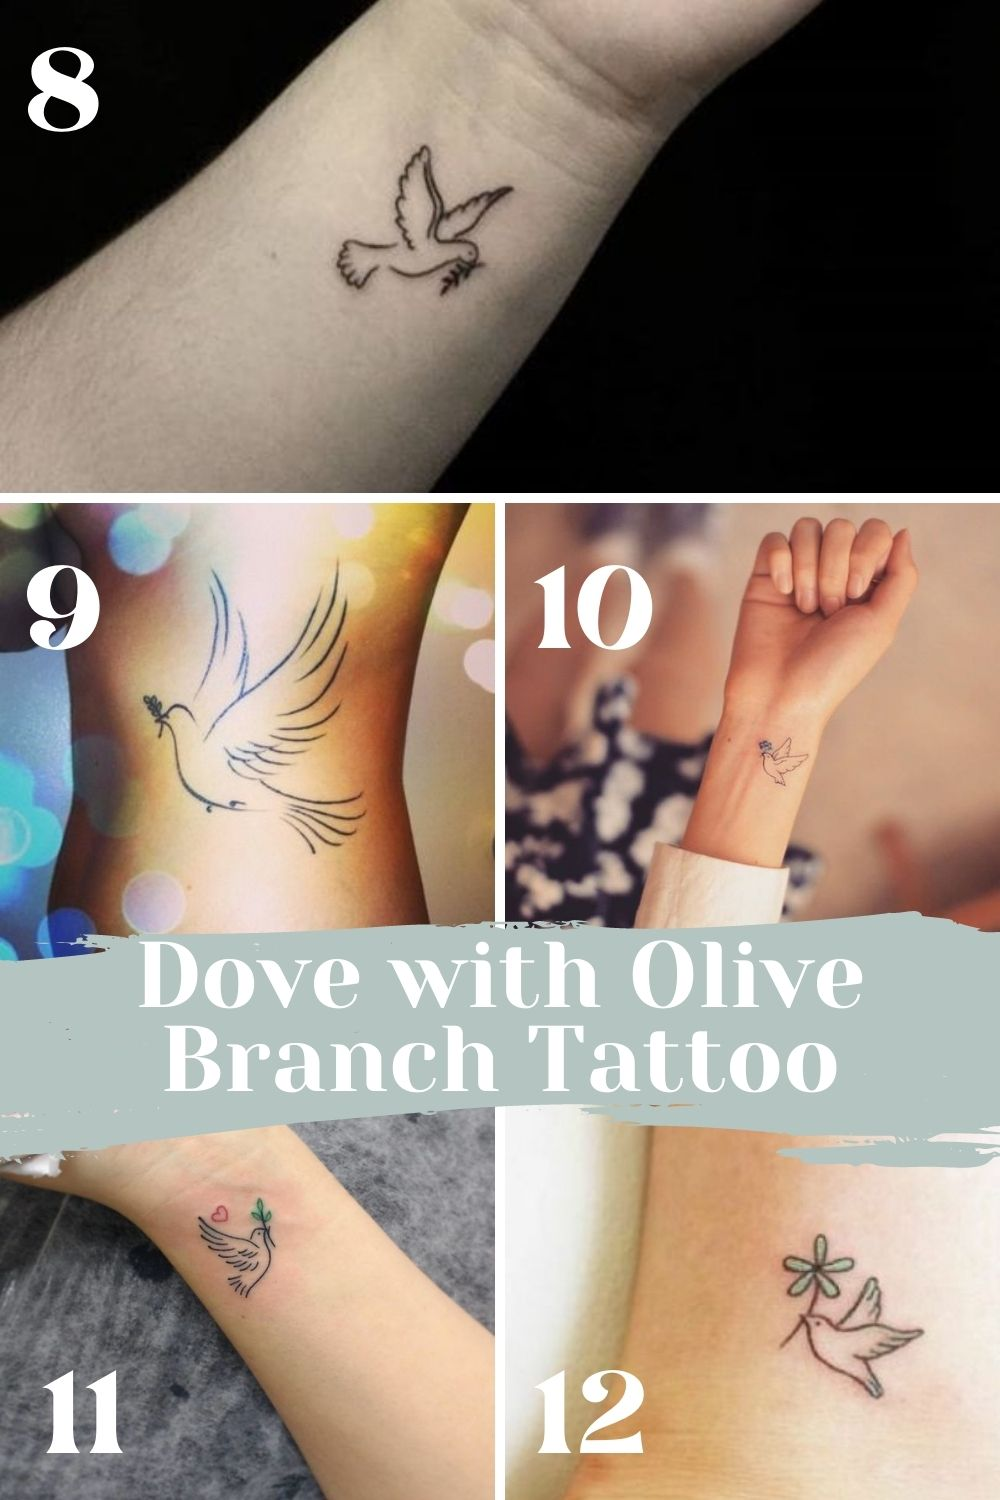 Dove With Olive Branch Tattoo